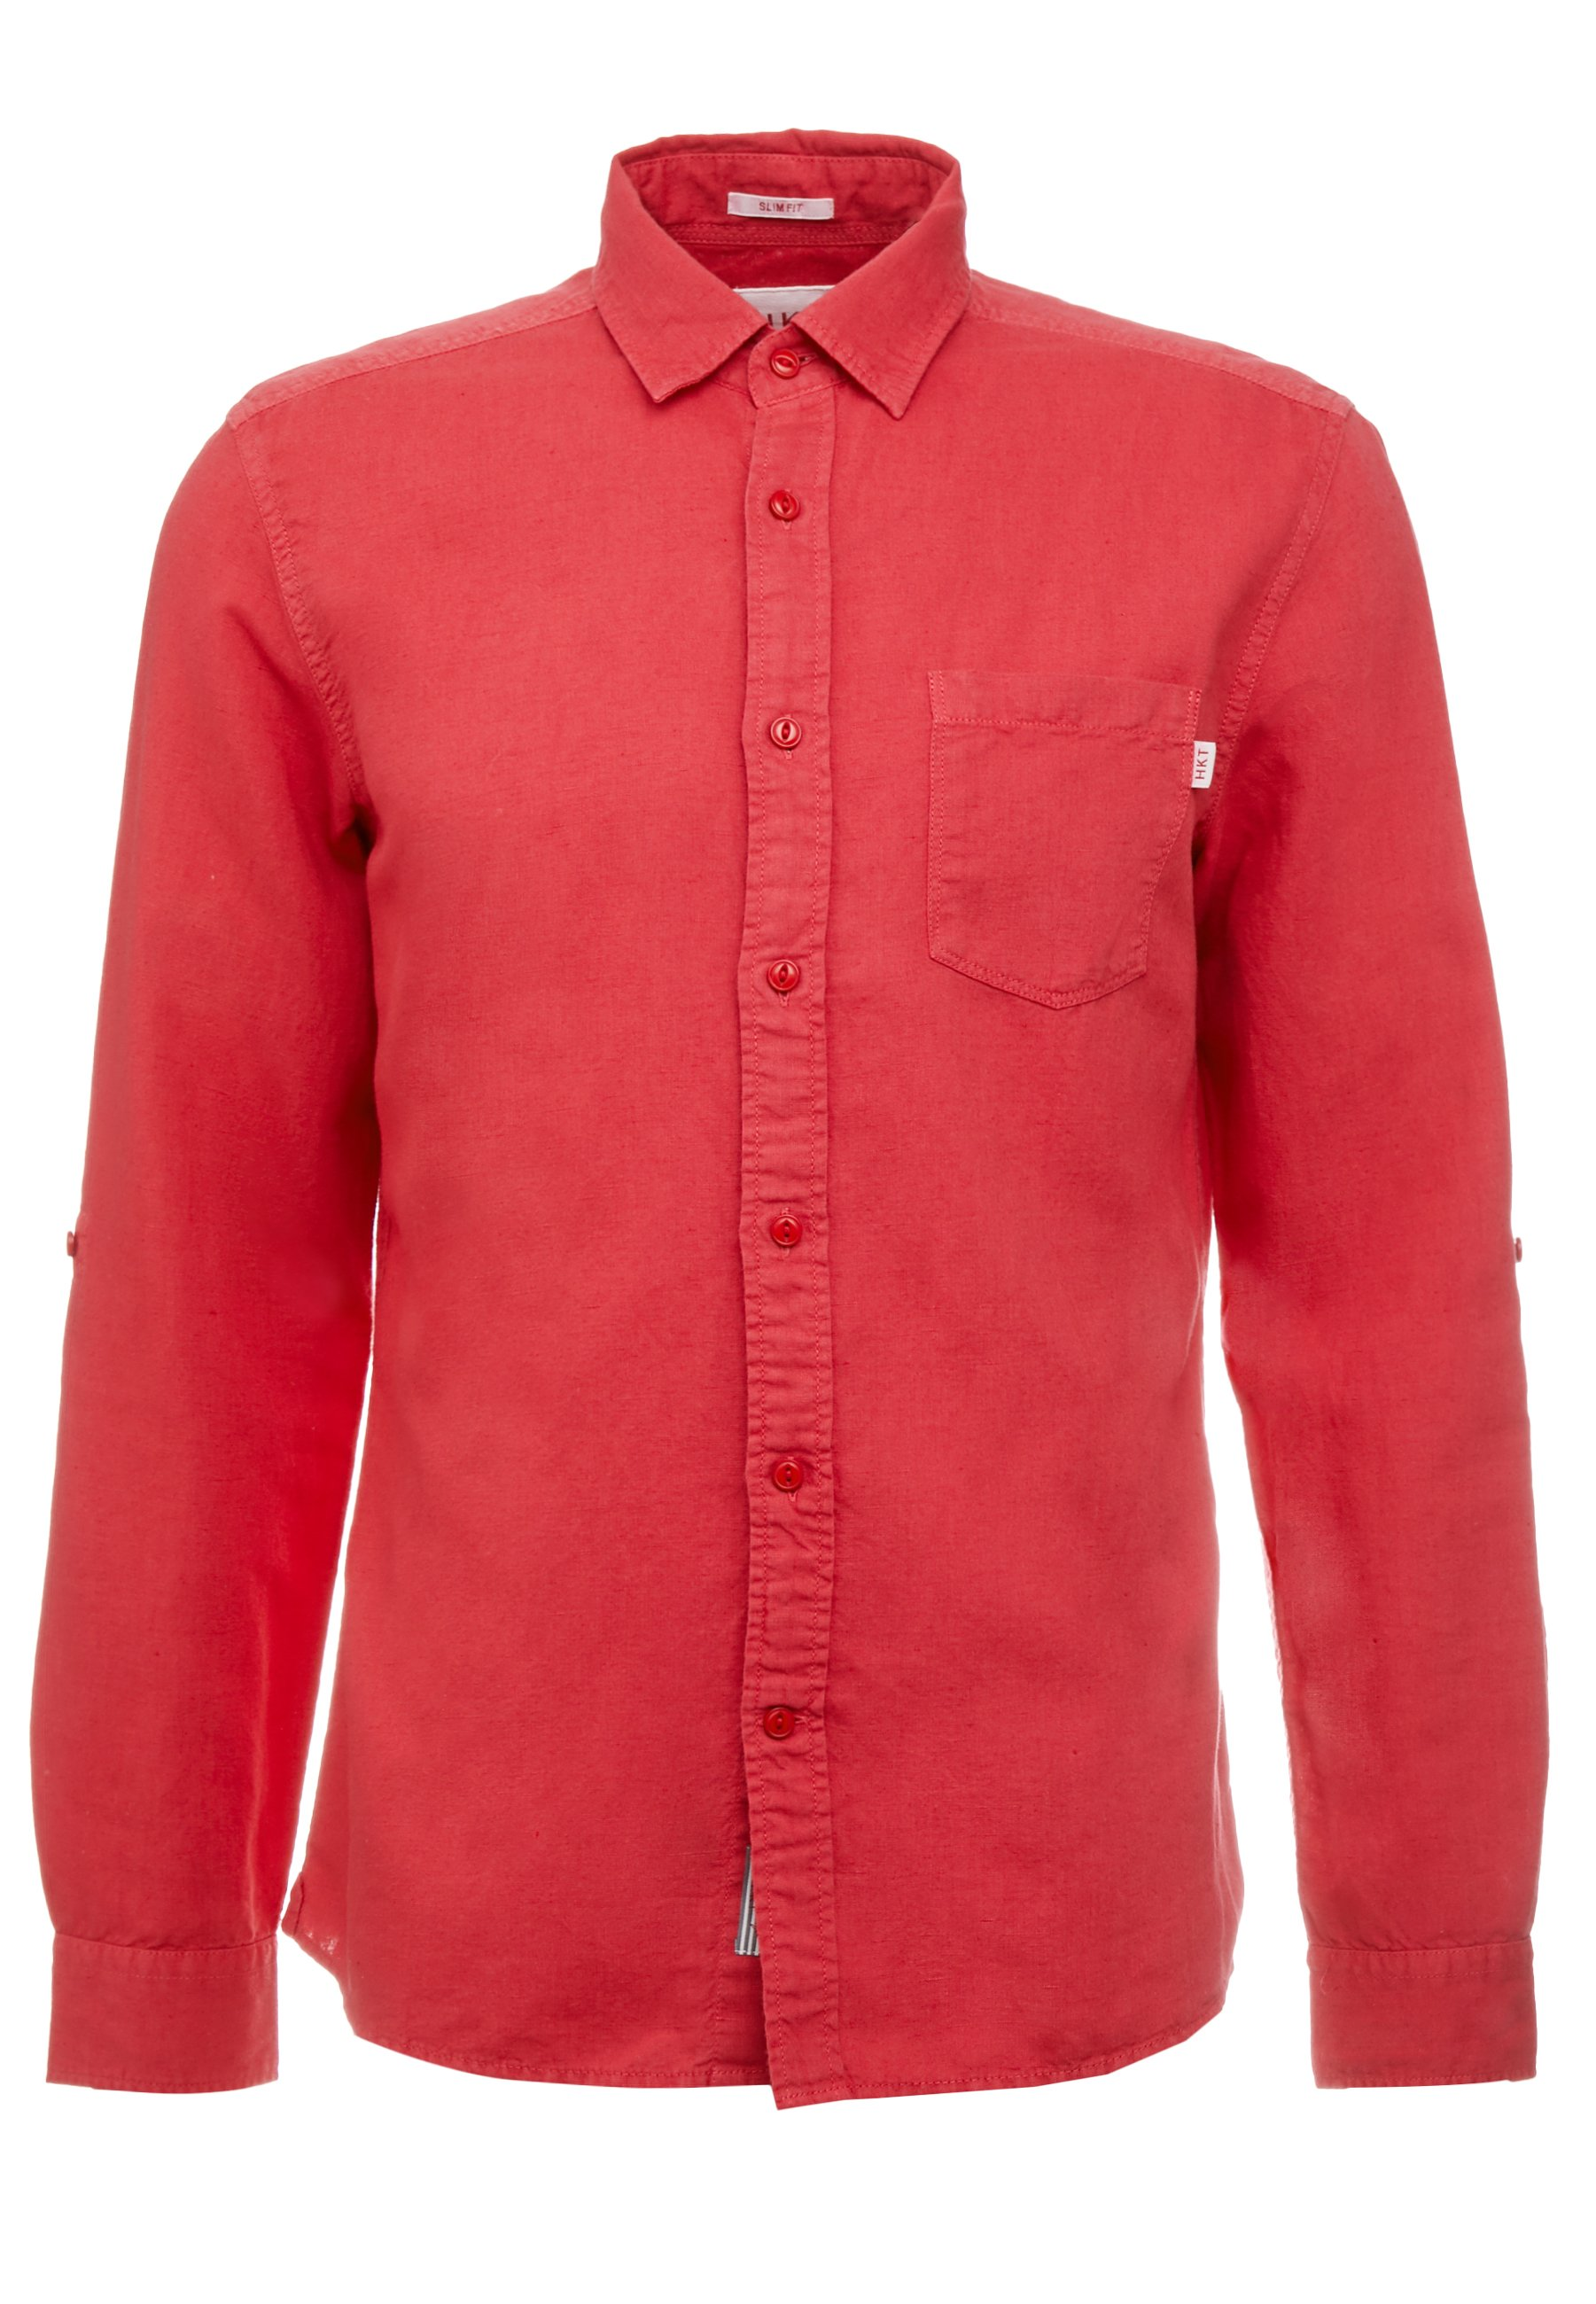 HKT by Hackett Chemise - deep red